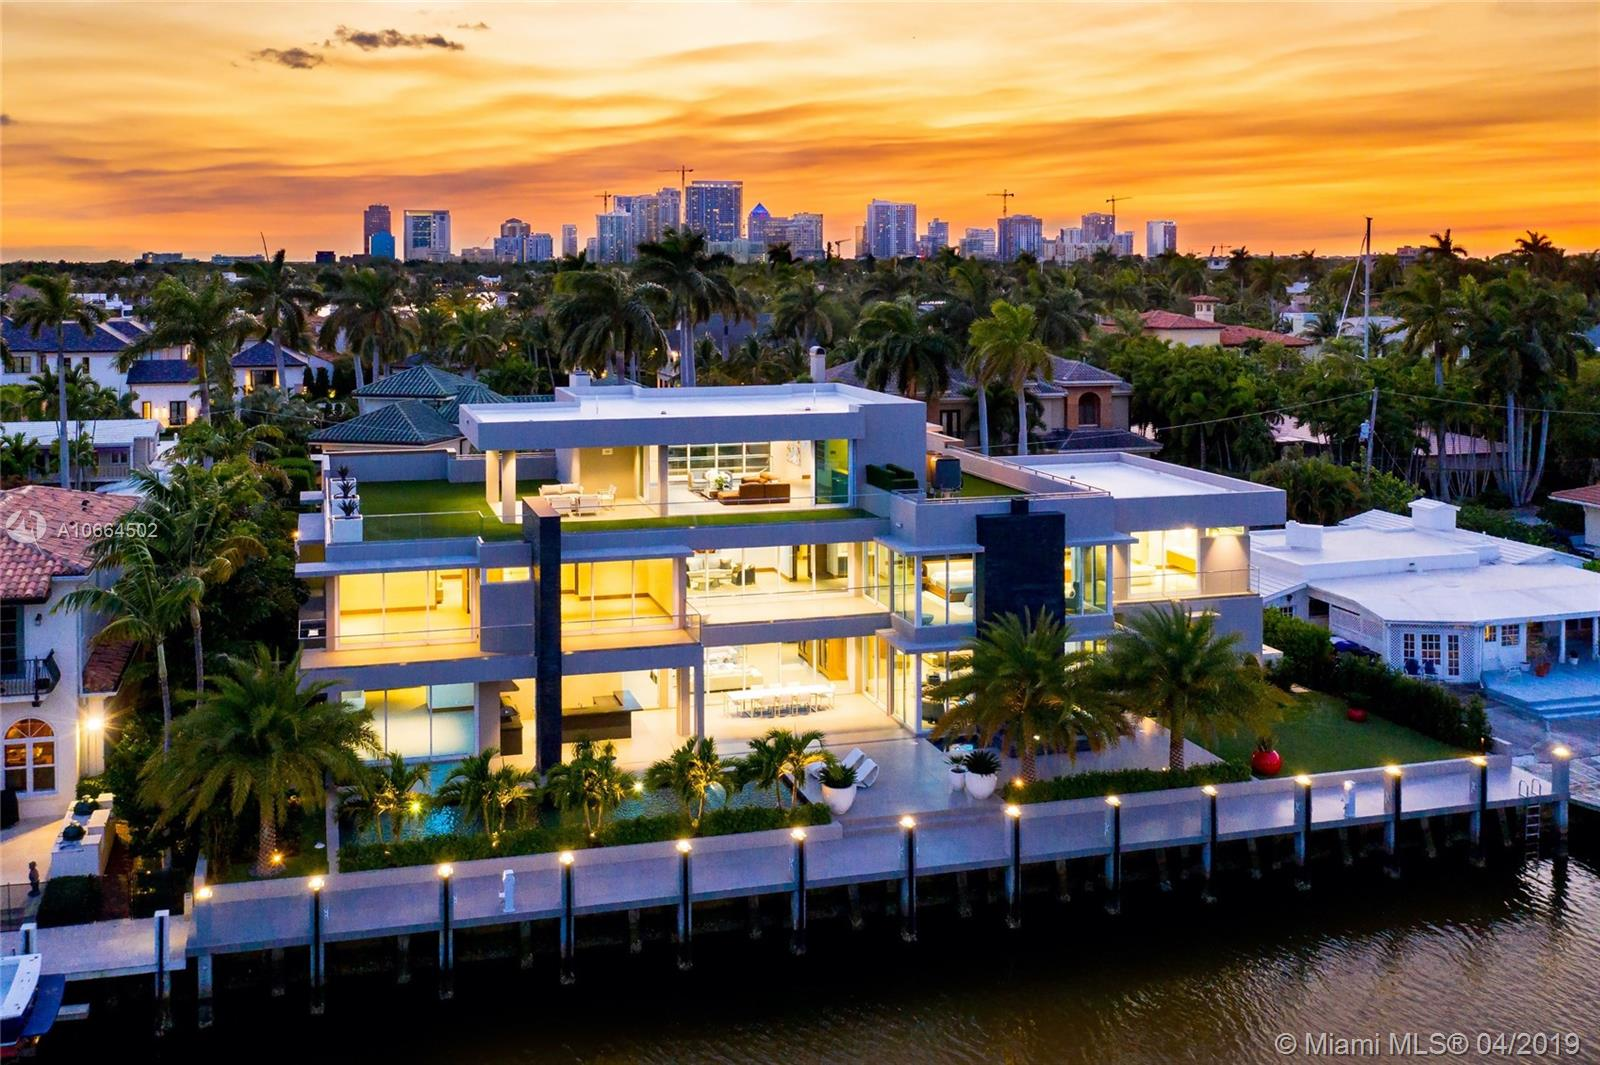 Sleek sophistication meets intelligent architecture in the prestigious Las Olas Isles. 3-Story design with over 9,000 sq ft of luxury and smart home technology including integrated sound system. Designed for an entertainer, this contemporary home offers 131 ft of water frontage with easy ocean access, a lap pool with built in spa and outdoor kitchen, a third floor club room with wet bar and stunning views from sunrise to sunset. 2 single arm car lifts, custom elevator, 3 gas fireplaces. 7 zone A/C and camera security system throughout the entire home. This modern masterpiece has 7 generous bedrooms and 9.5 bathrooms. Italian kitchen featuring Sub-Zero & Wolf appliances, steam shower with a sauna. Only the finest finishes throughout.